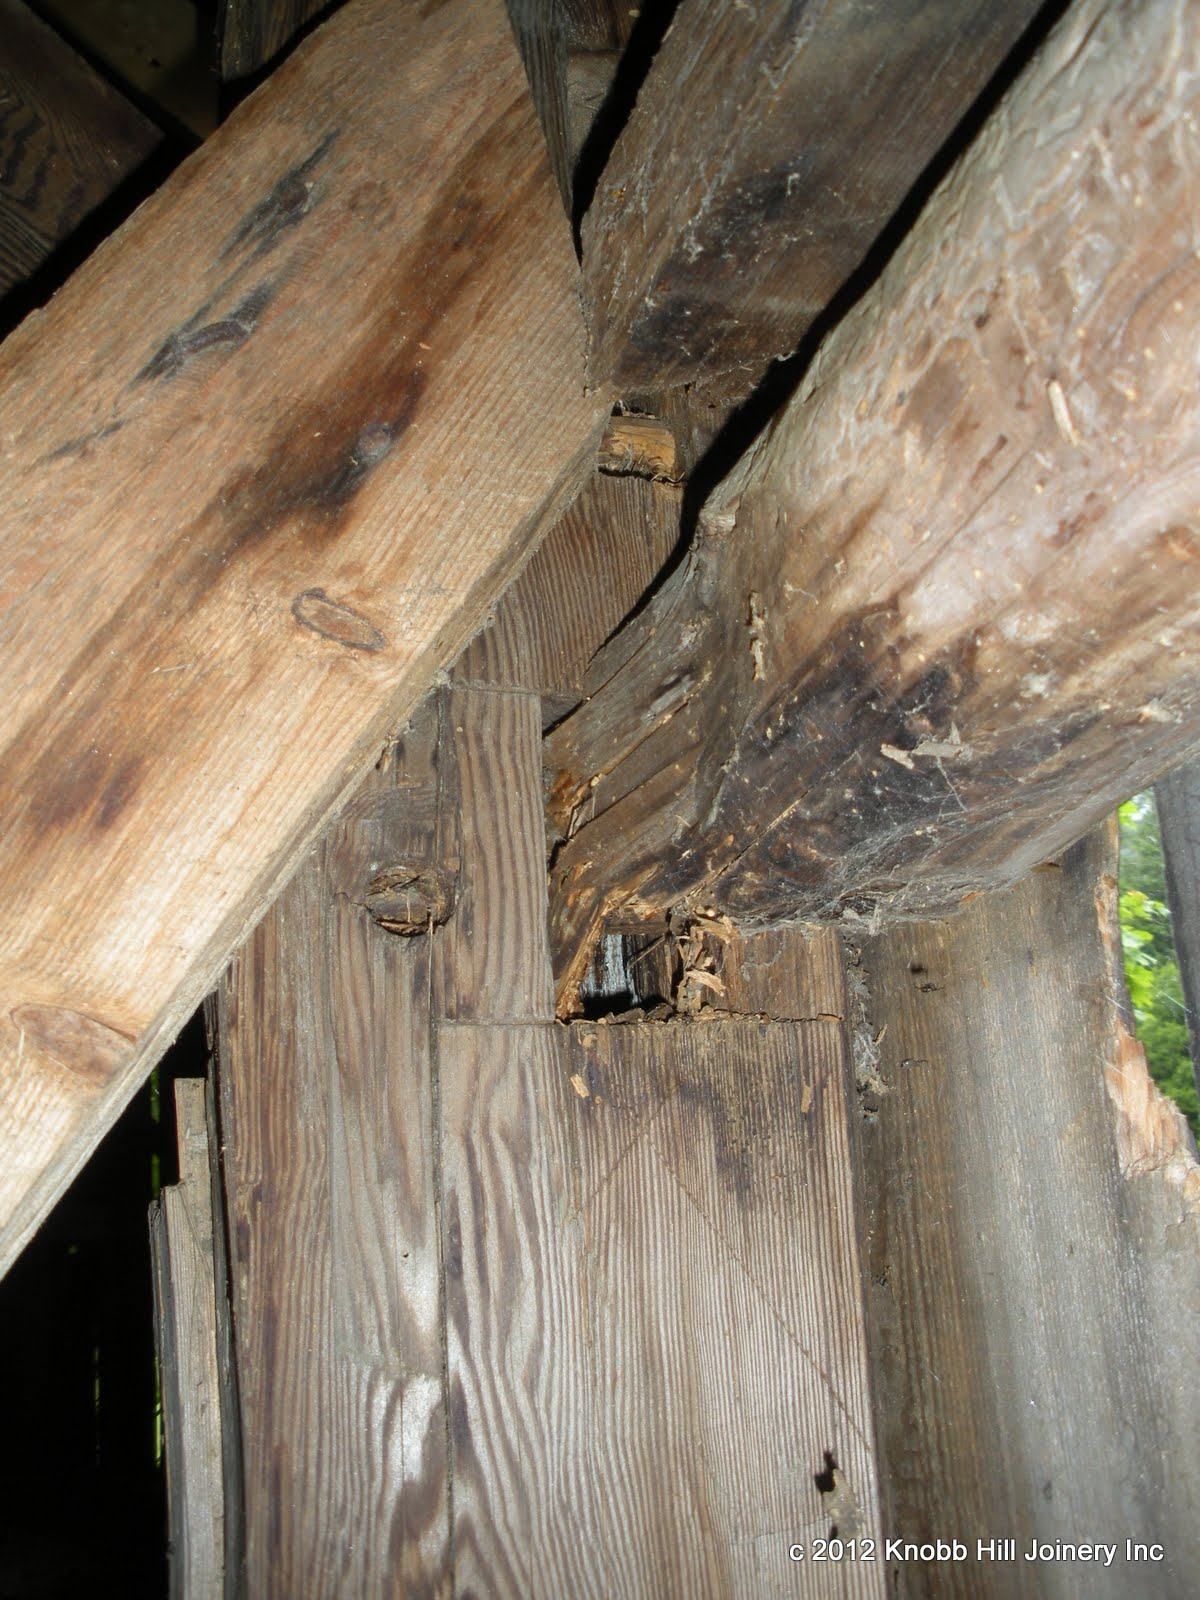 Deterioration of a brace and upper girt at the hollow center post.